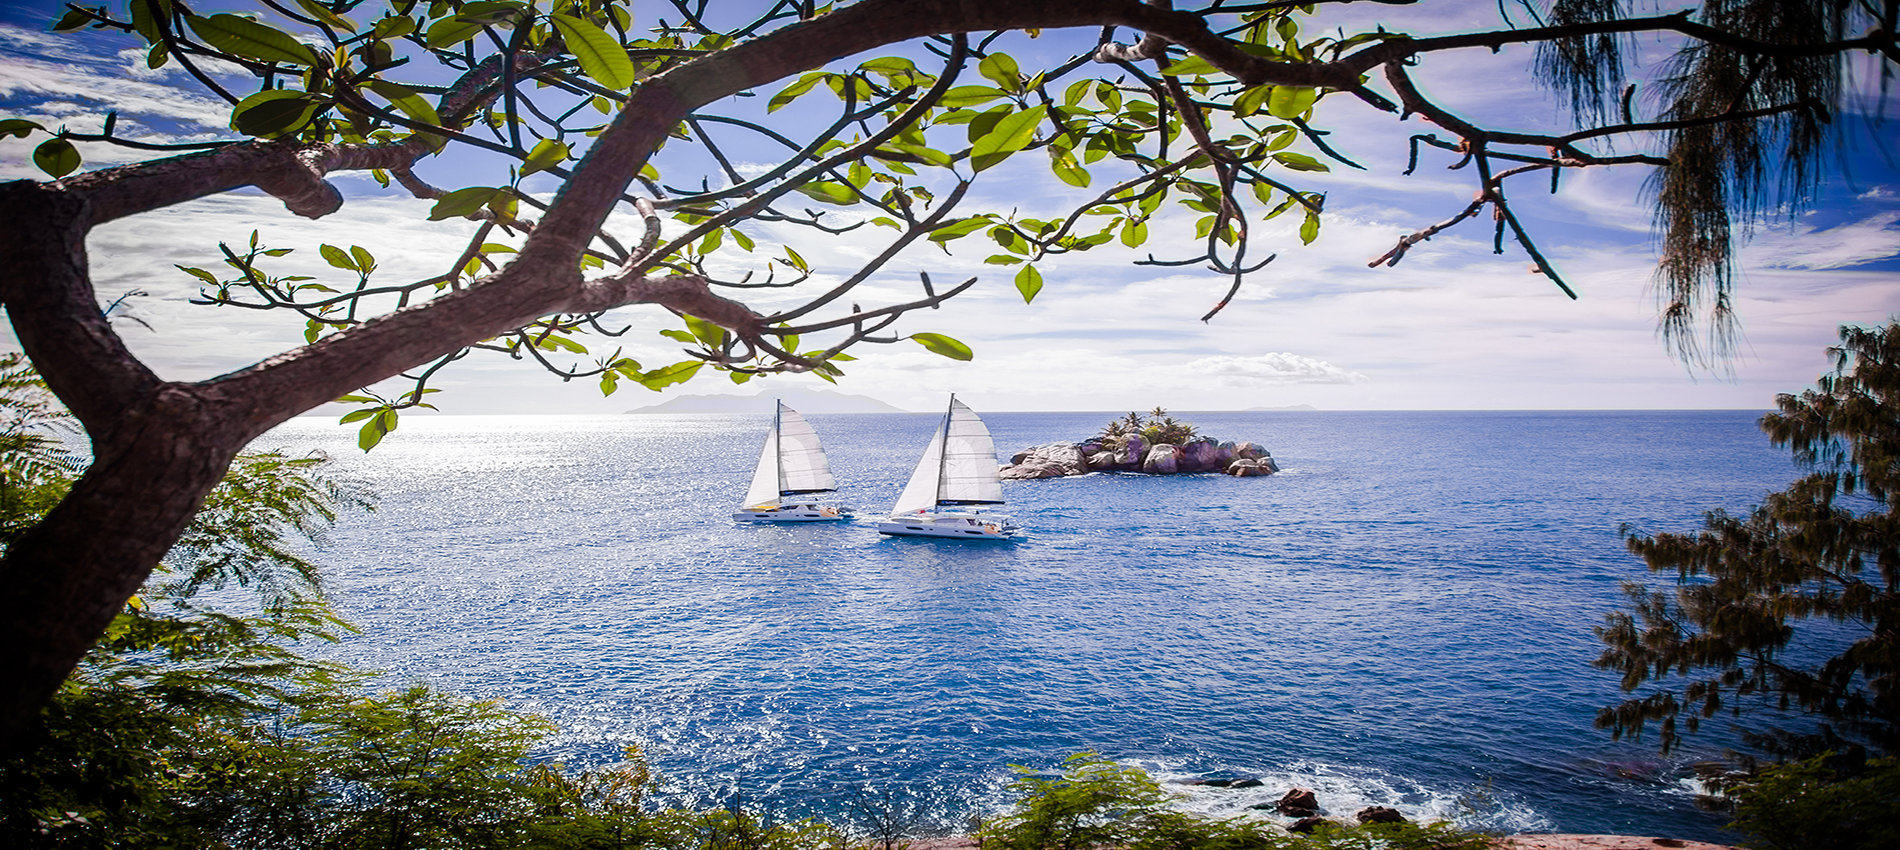 Two catamarans sailing in the Seychelles